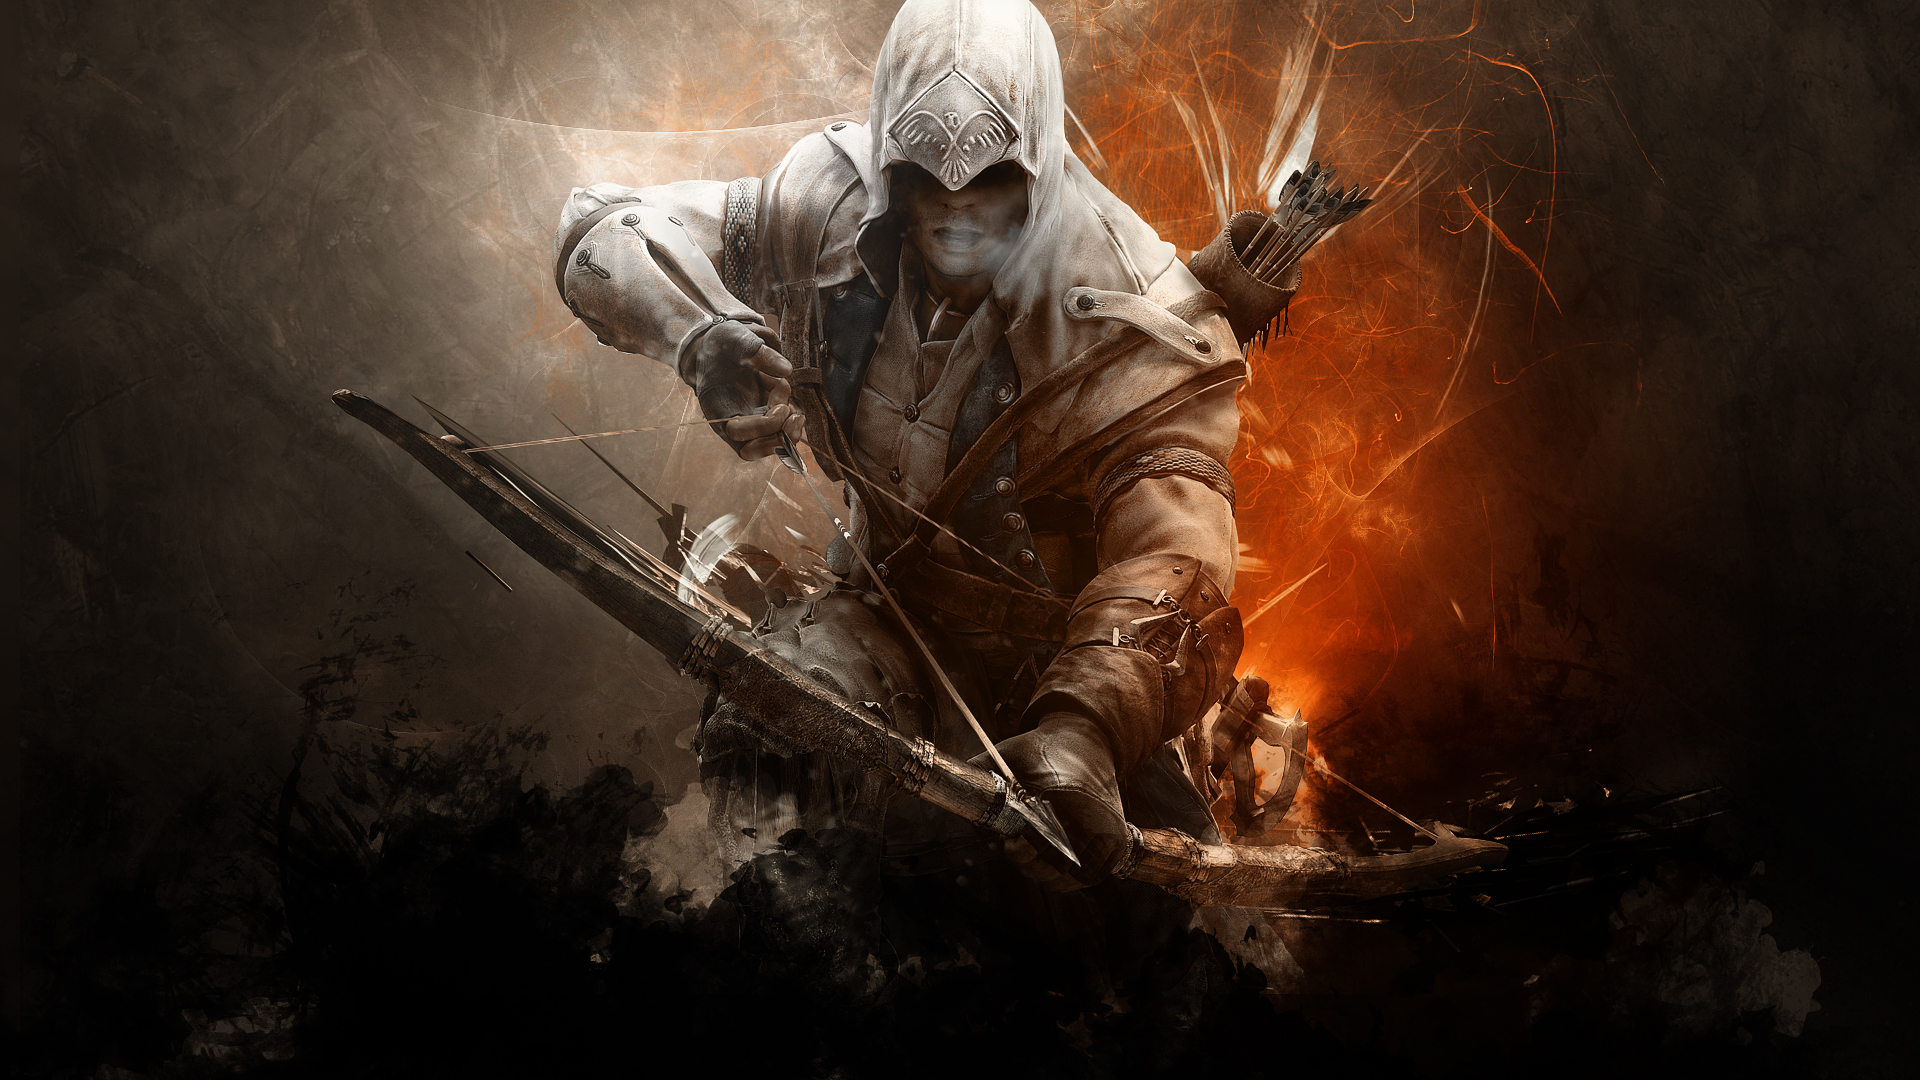 70 Assassins Creed Hd Wallpaper On Wallpapersafari